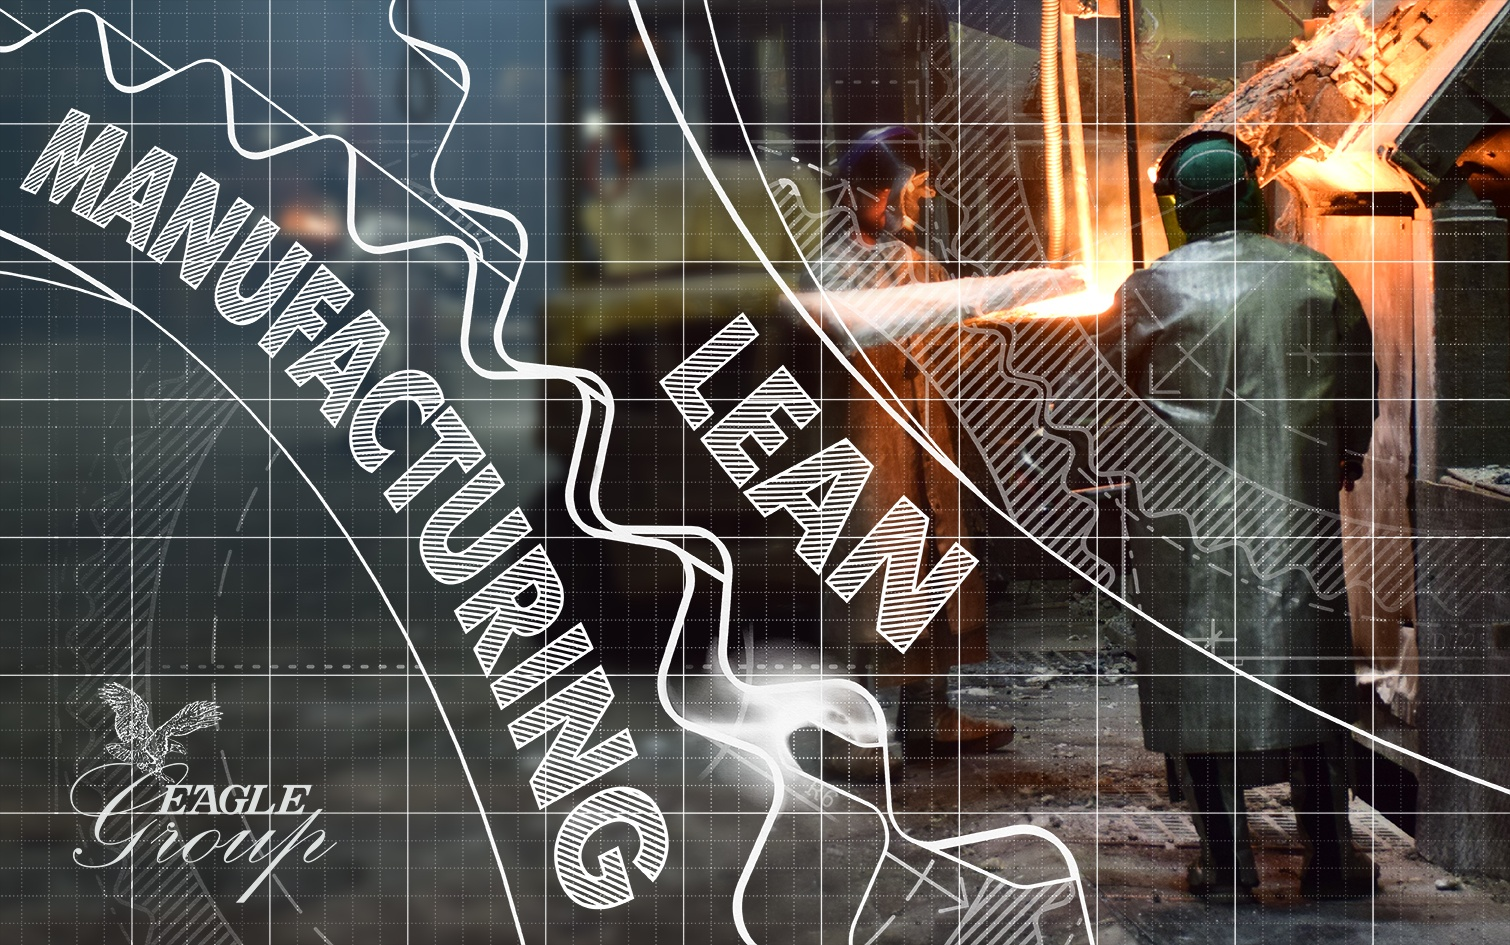 lean manufacturing eagle group